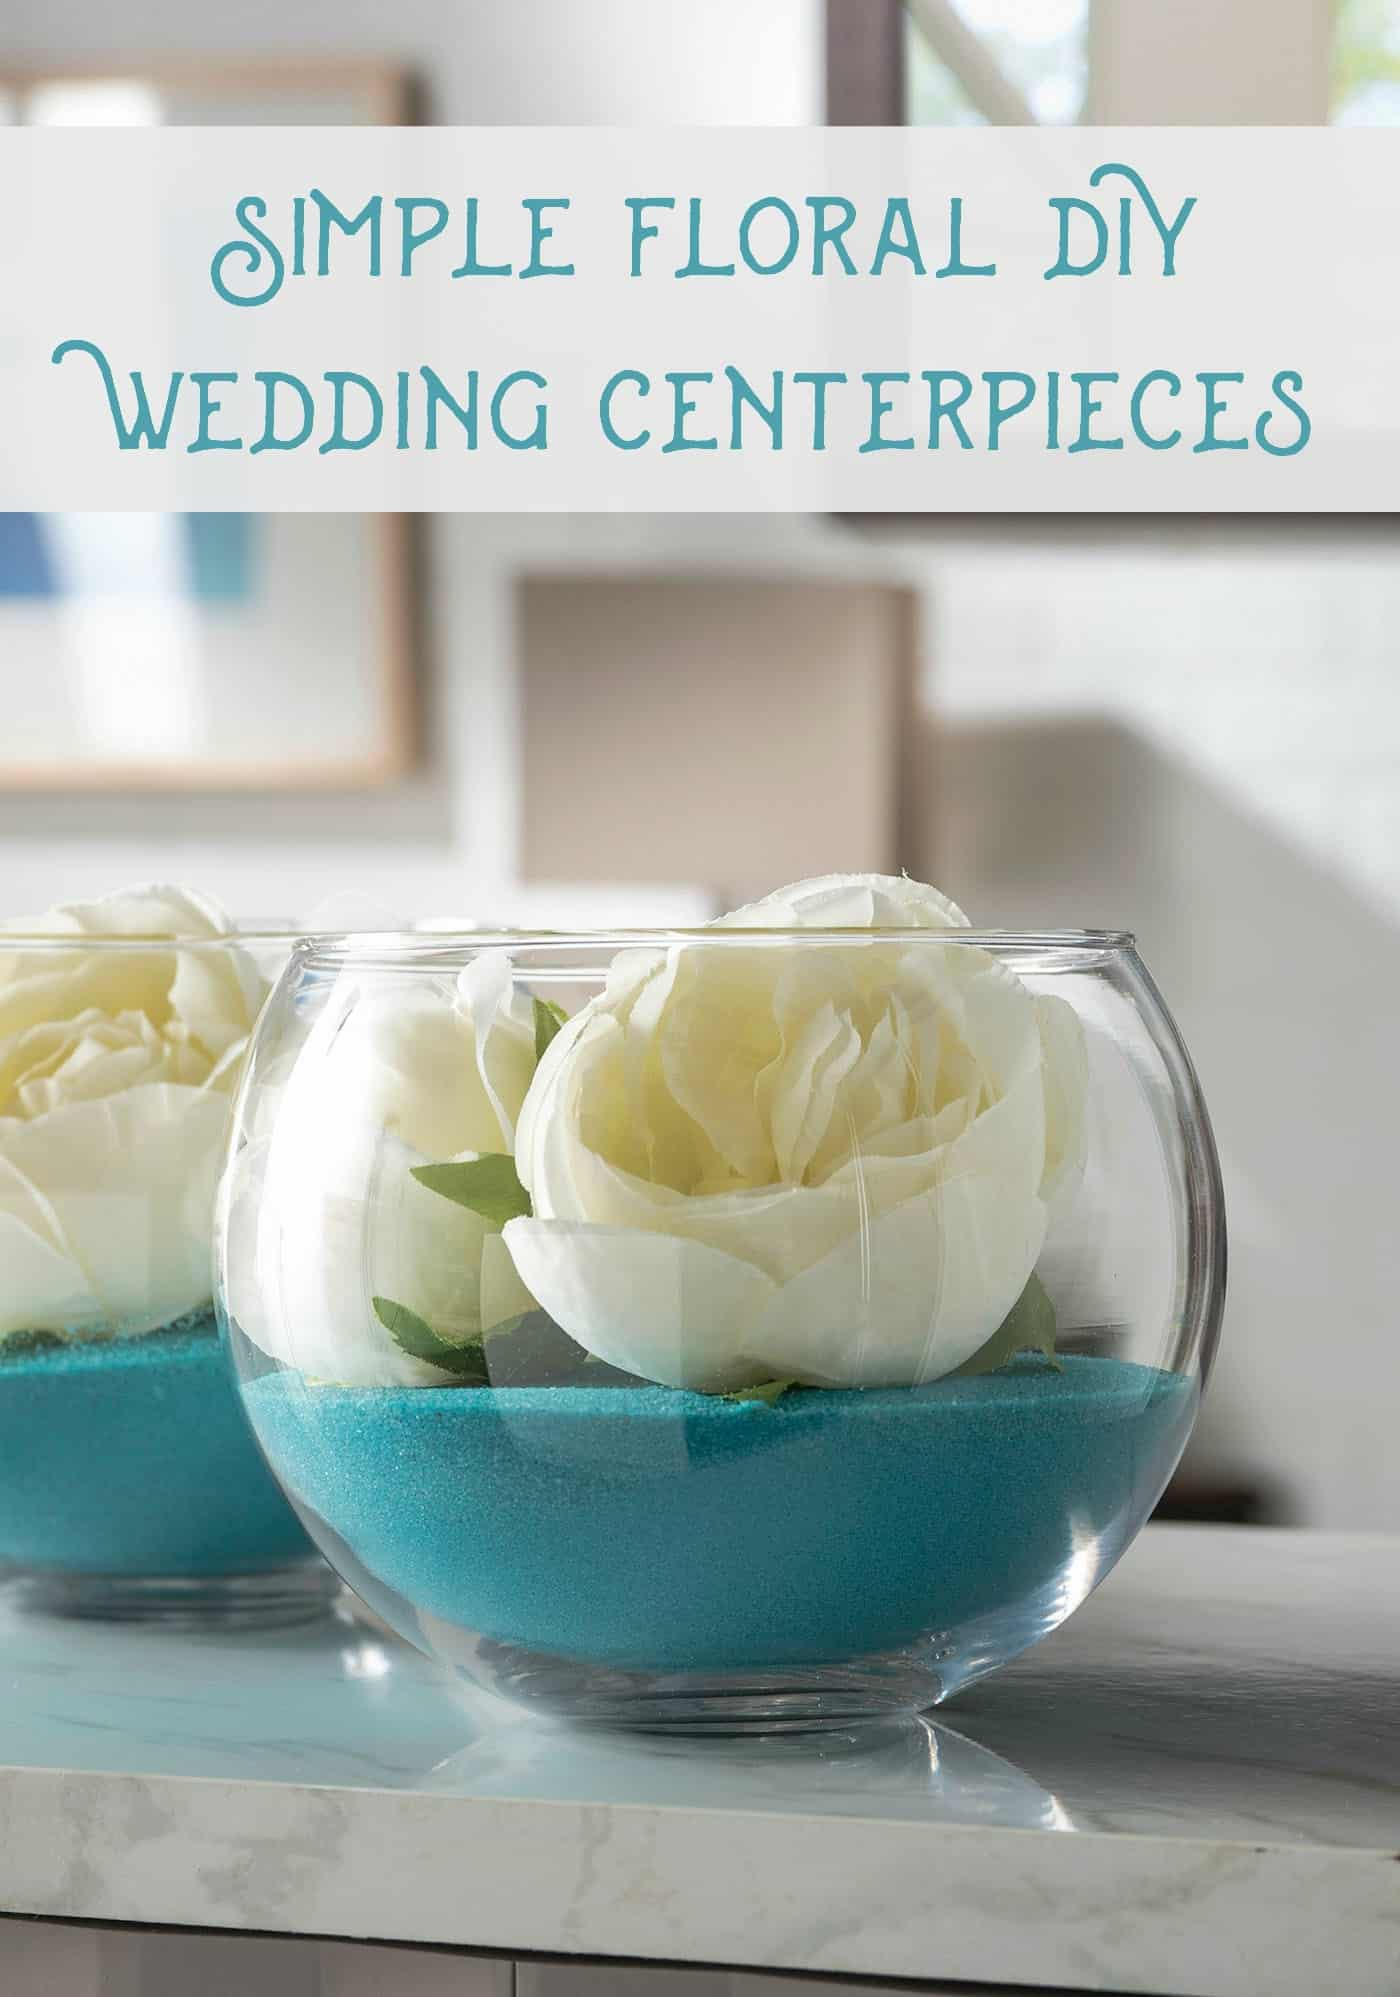 Diy wedding centerpieces that assemble in minutes candy